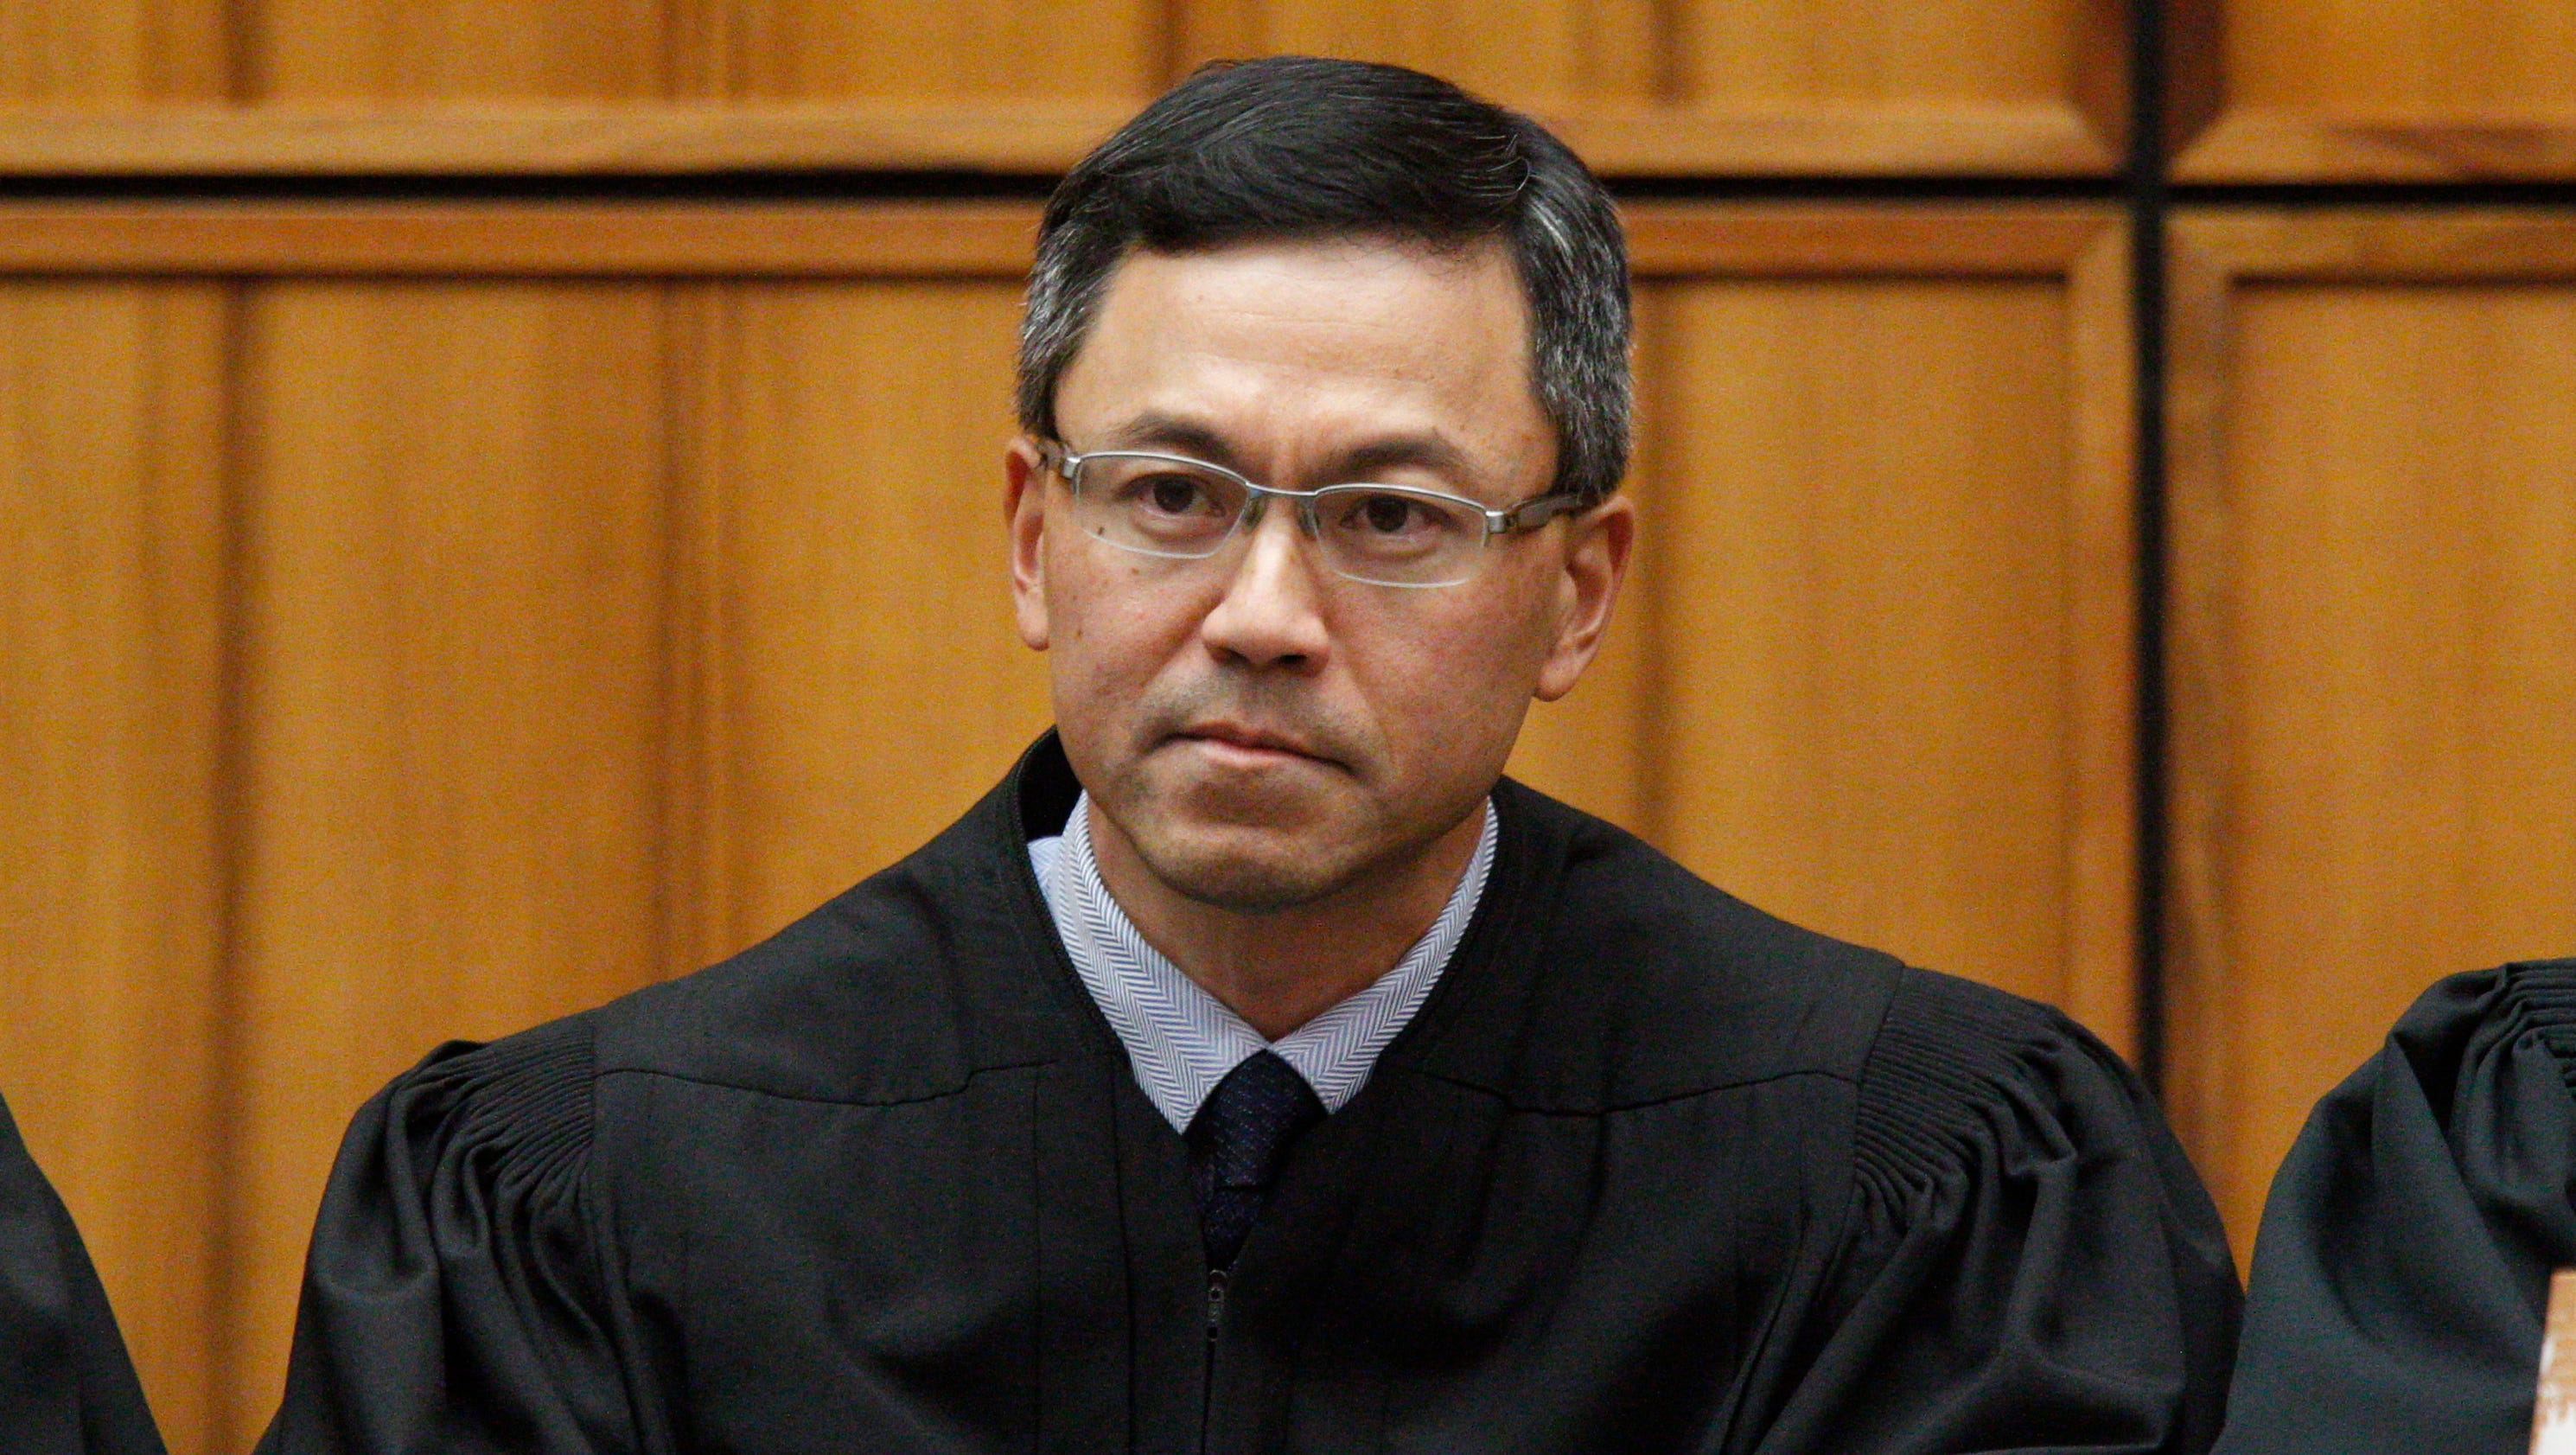 Hawaii Federal Judge Travel Ban